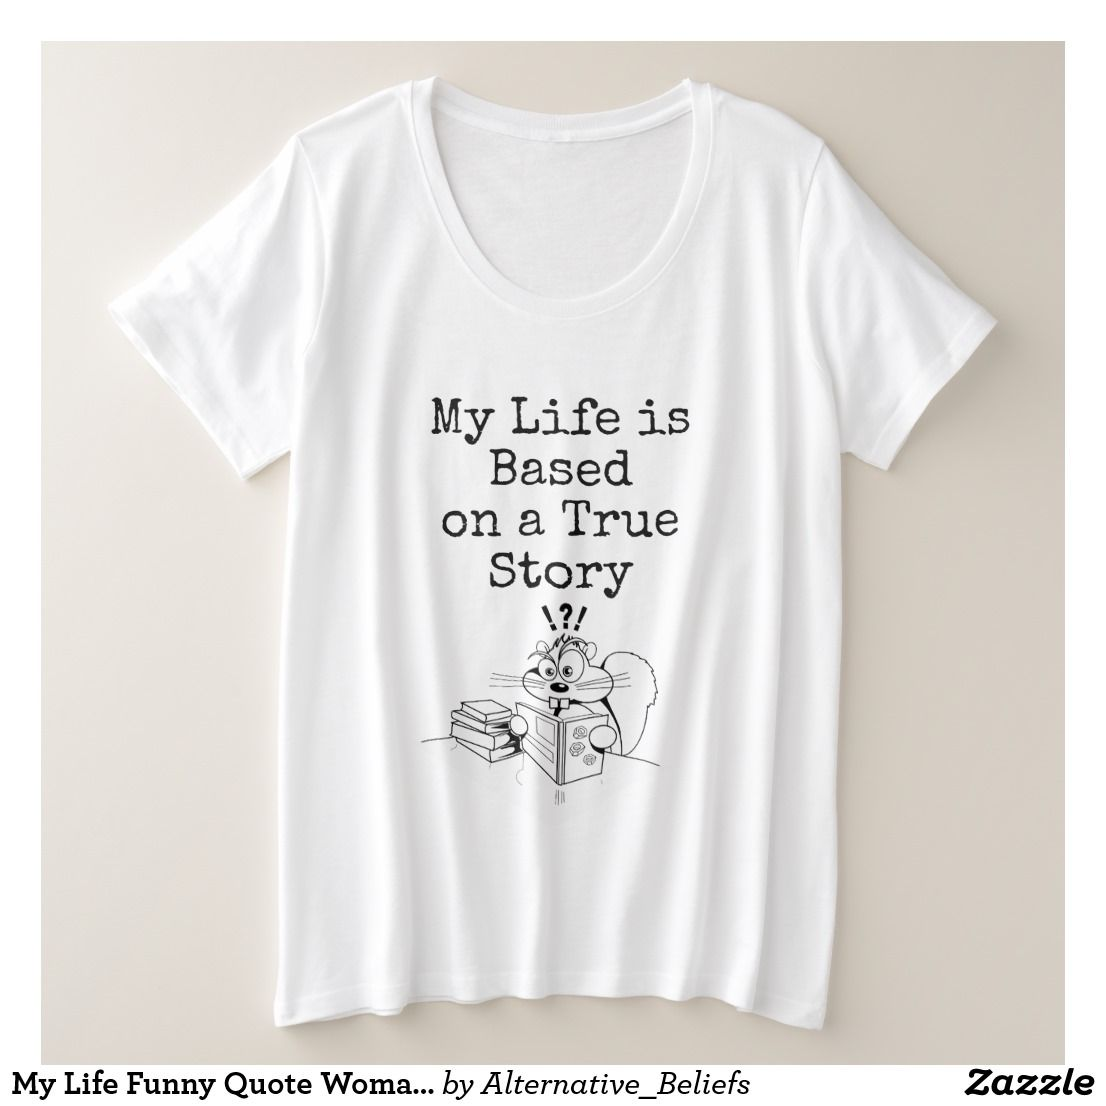 My Life Funny Quote Woman S T Shirt Zazzle Com T Shirts For Women Woman Quotes Funny Quotes